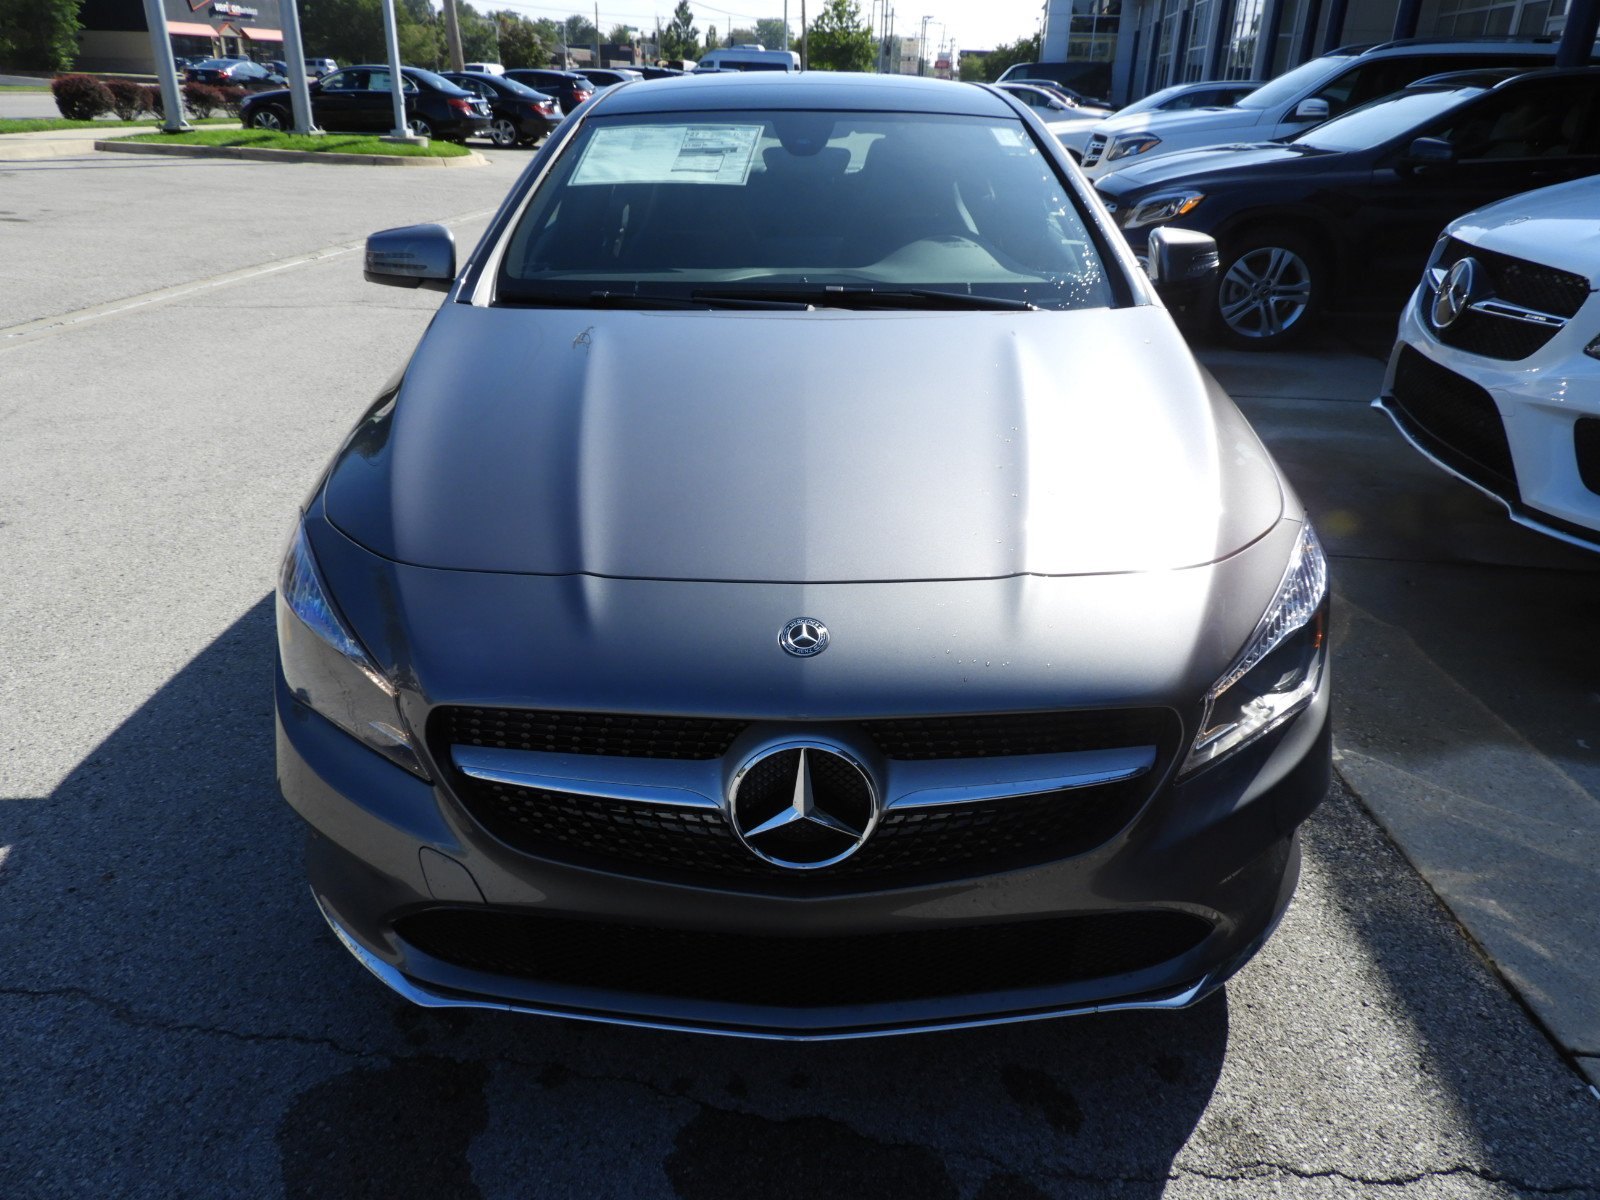 New 2019 Mercedes Benz CLA CLA 250 4MATIC 4 Door Coupe Coupe in